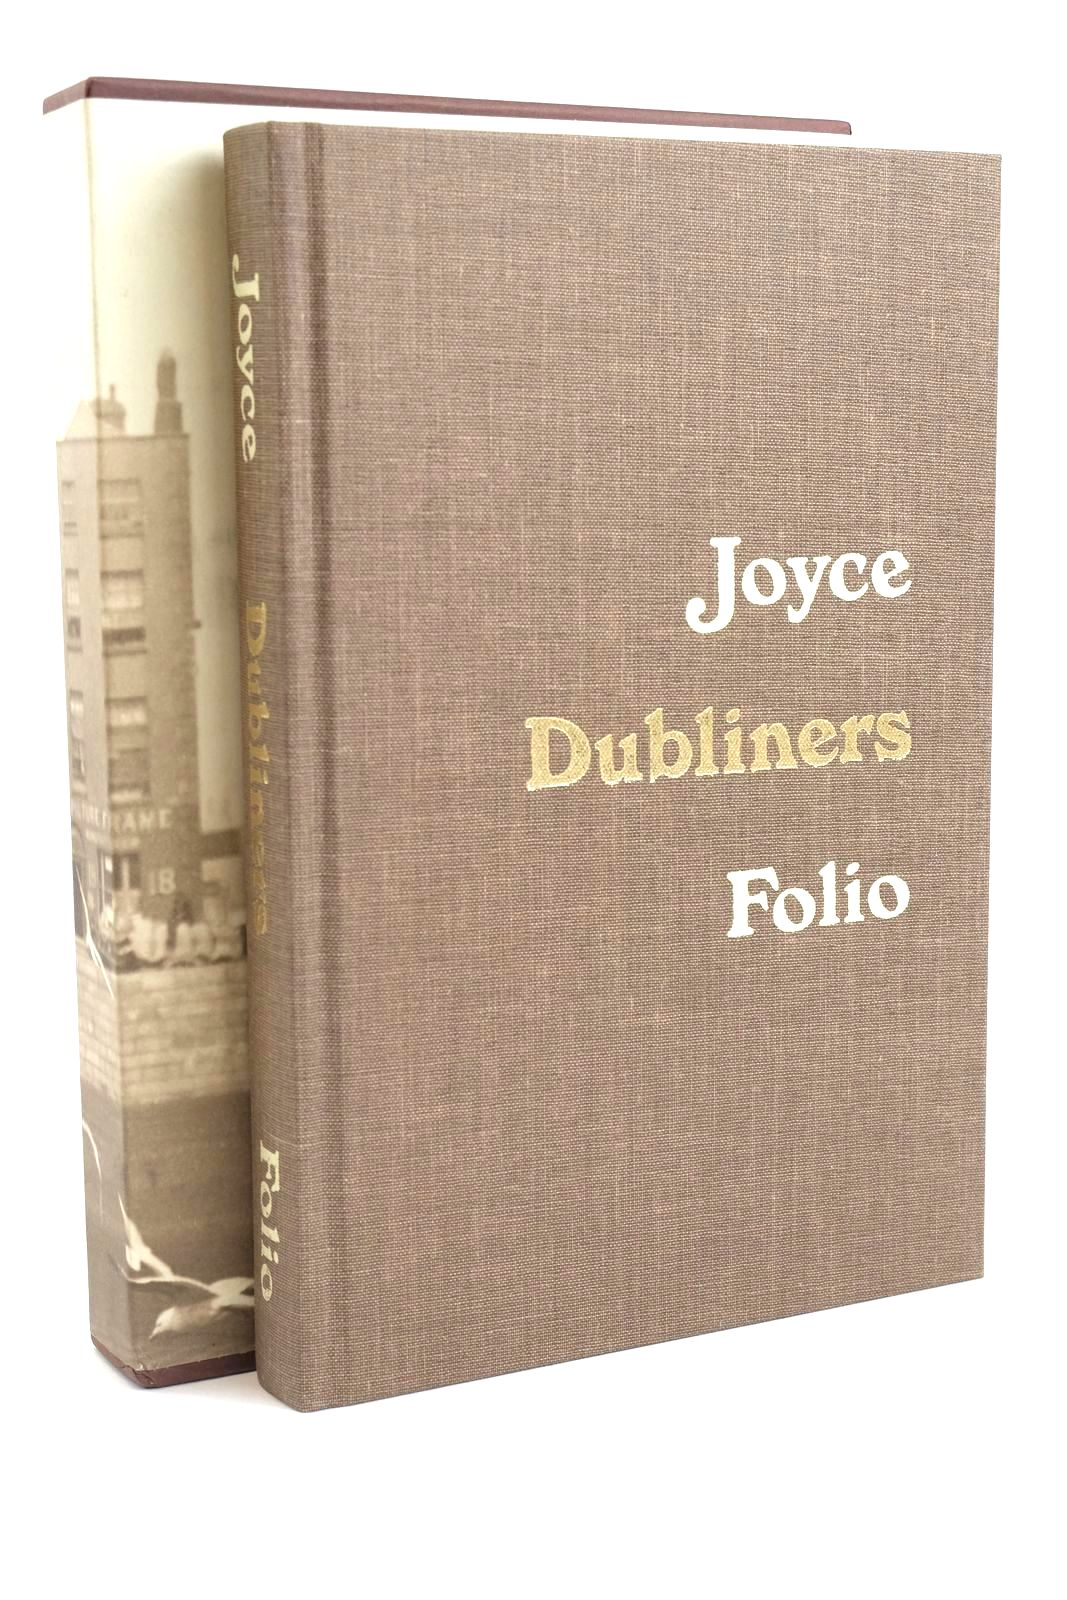 Photo of DUBLINERS written by Joyce, James published by Folio Society (STOCK CODE: 1320017)  for sale by Stella & Rose's Books